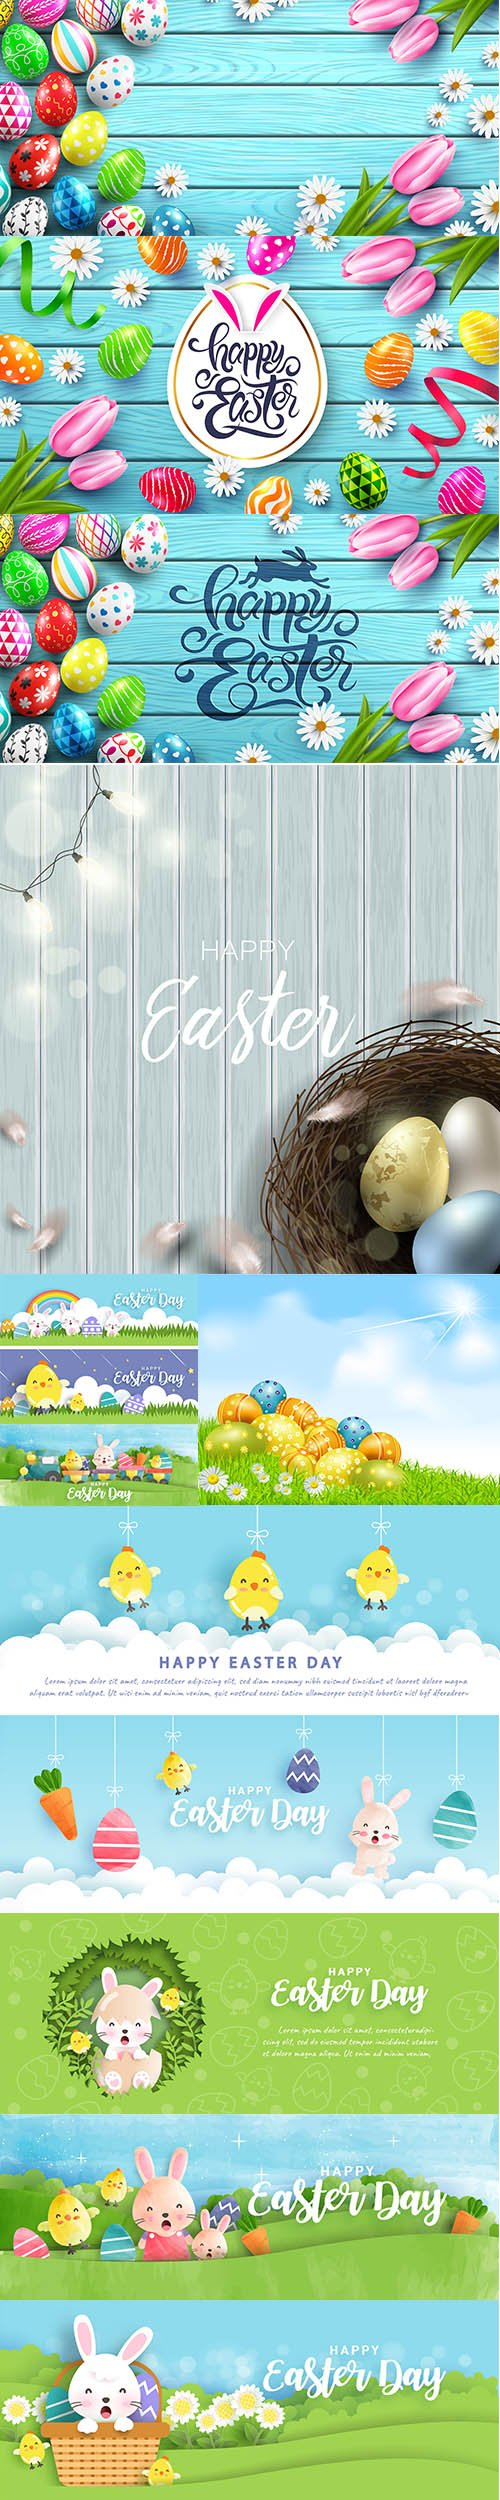 Happy Easter Luxury Backgrounds Template Vector Set Vol 2